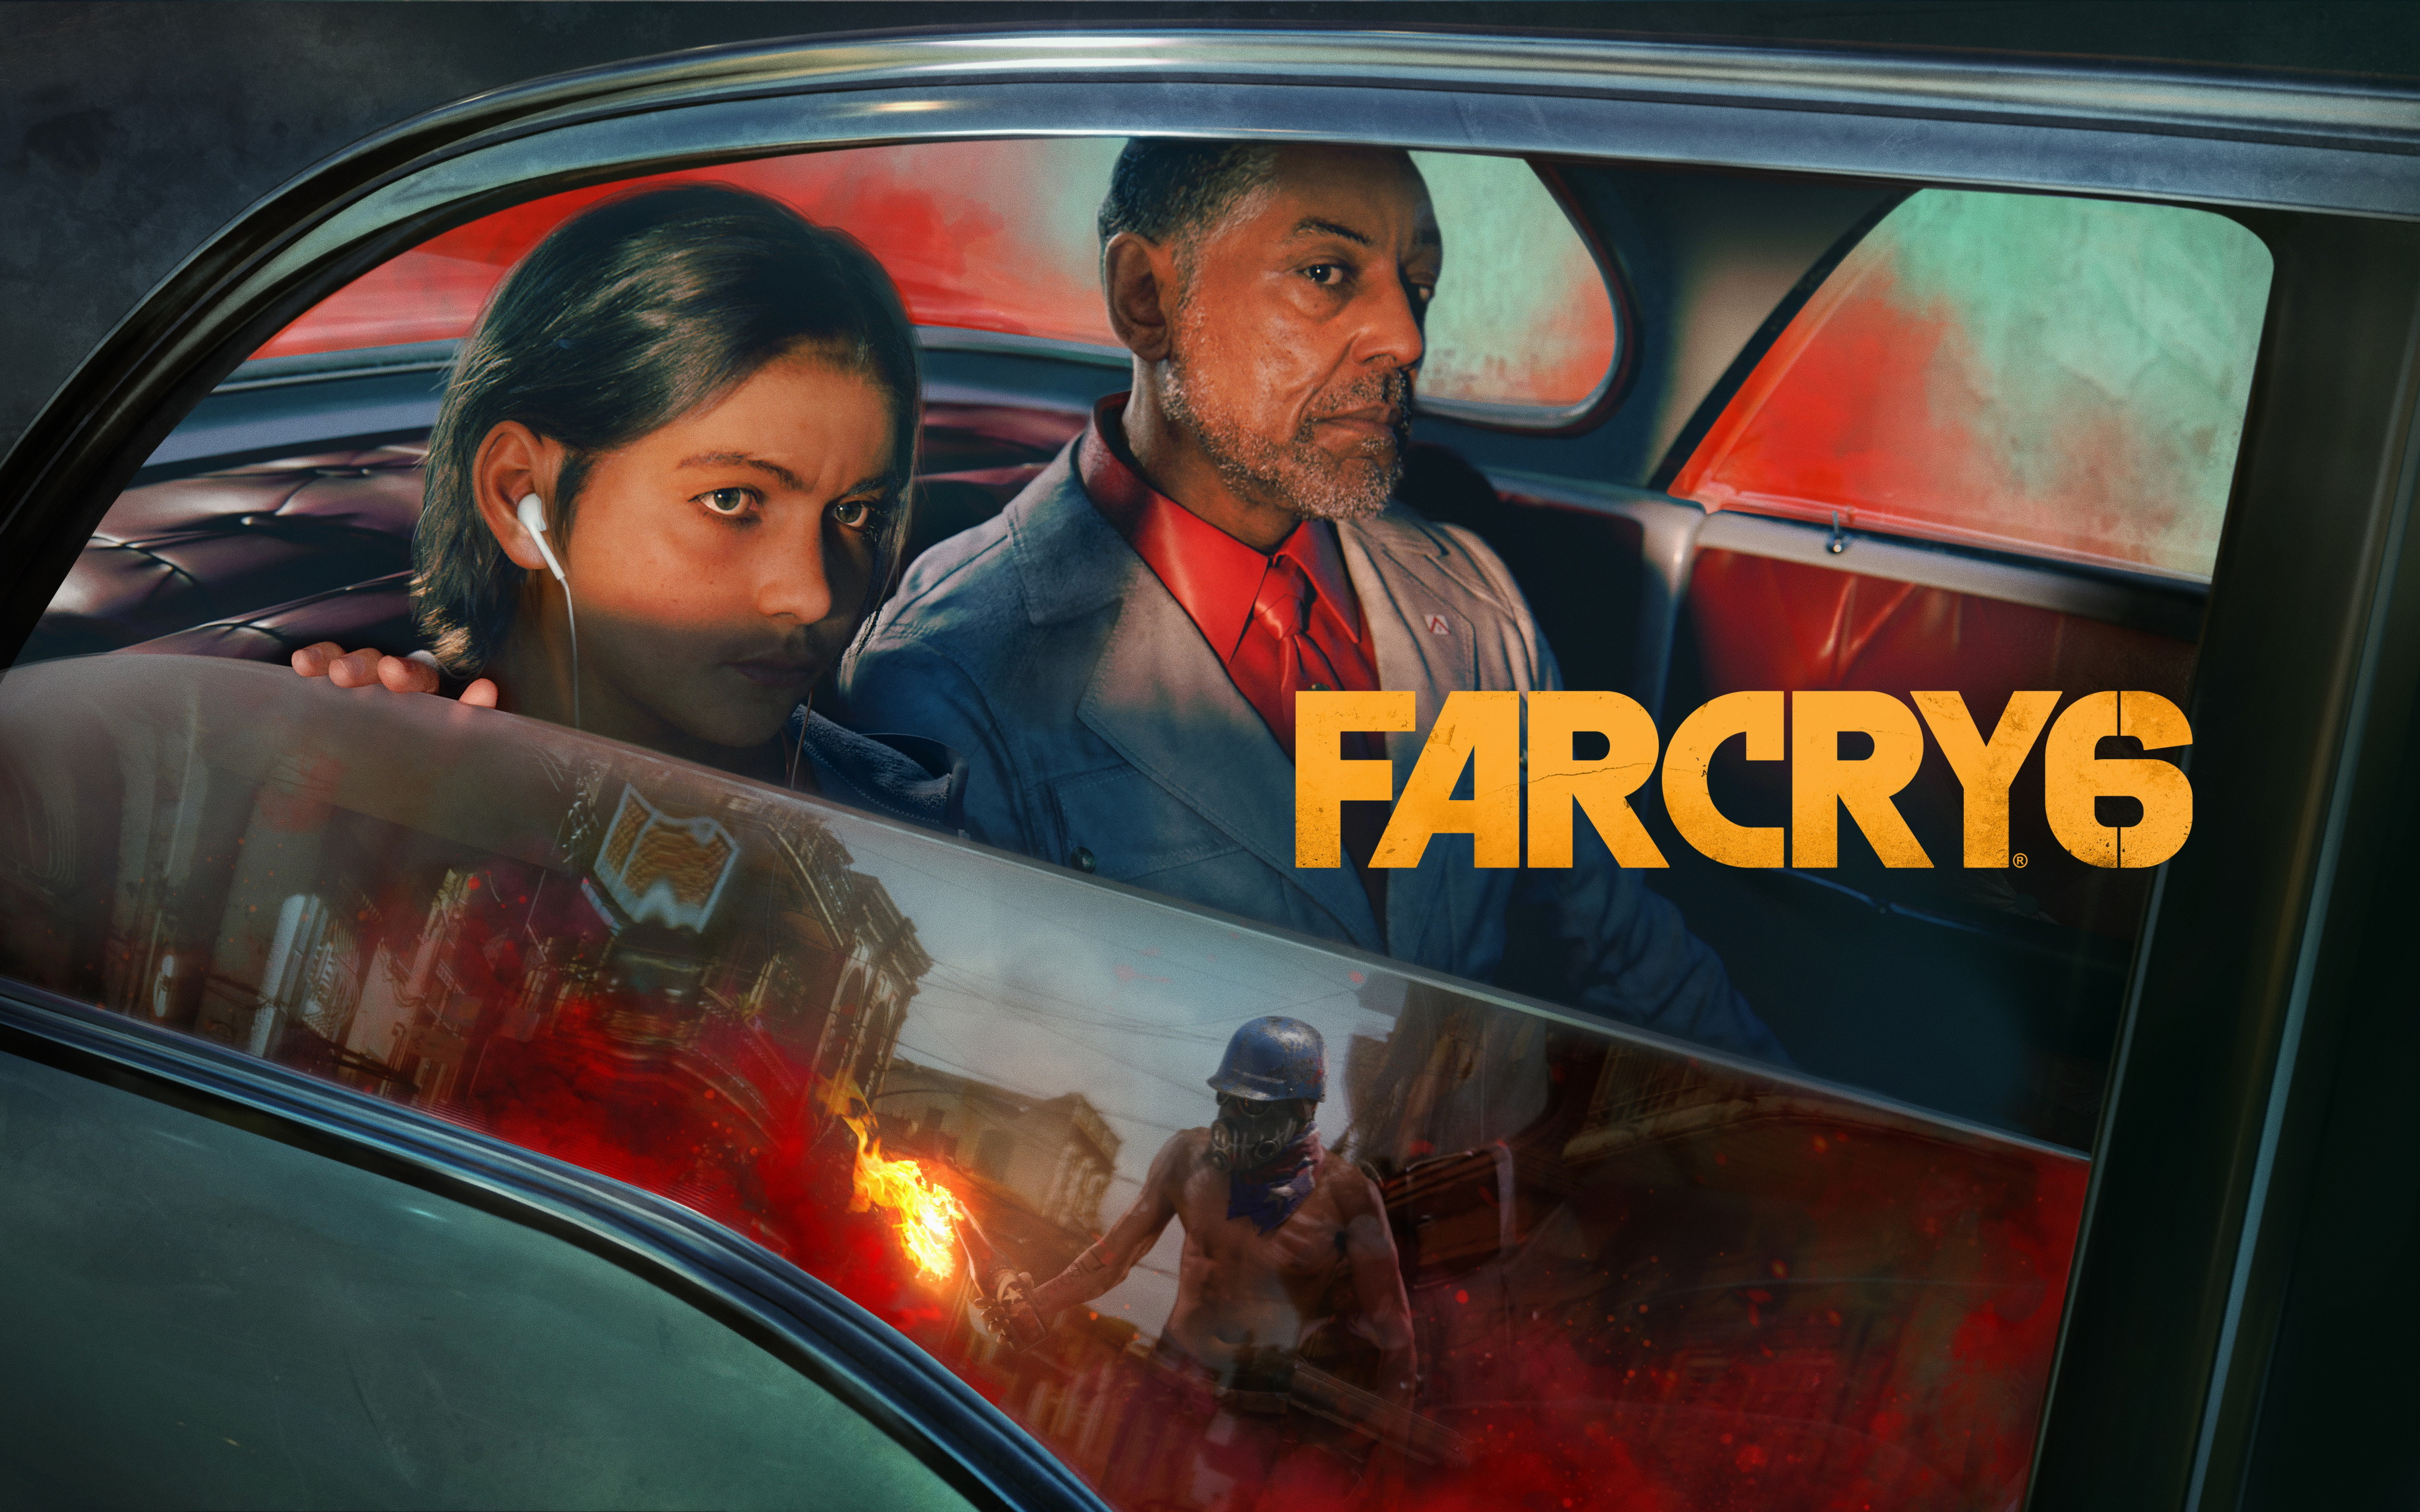 Farcry 6 wallpaper 3840x2400